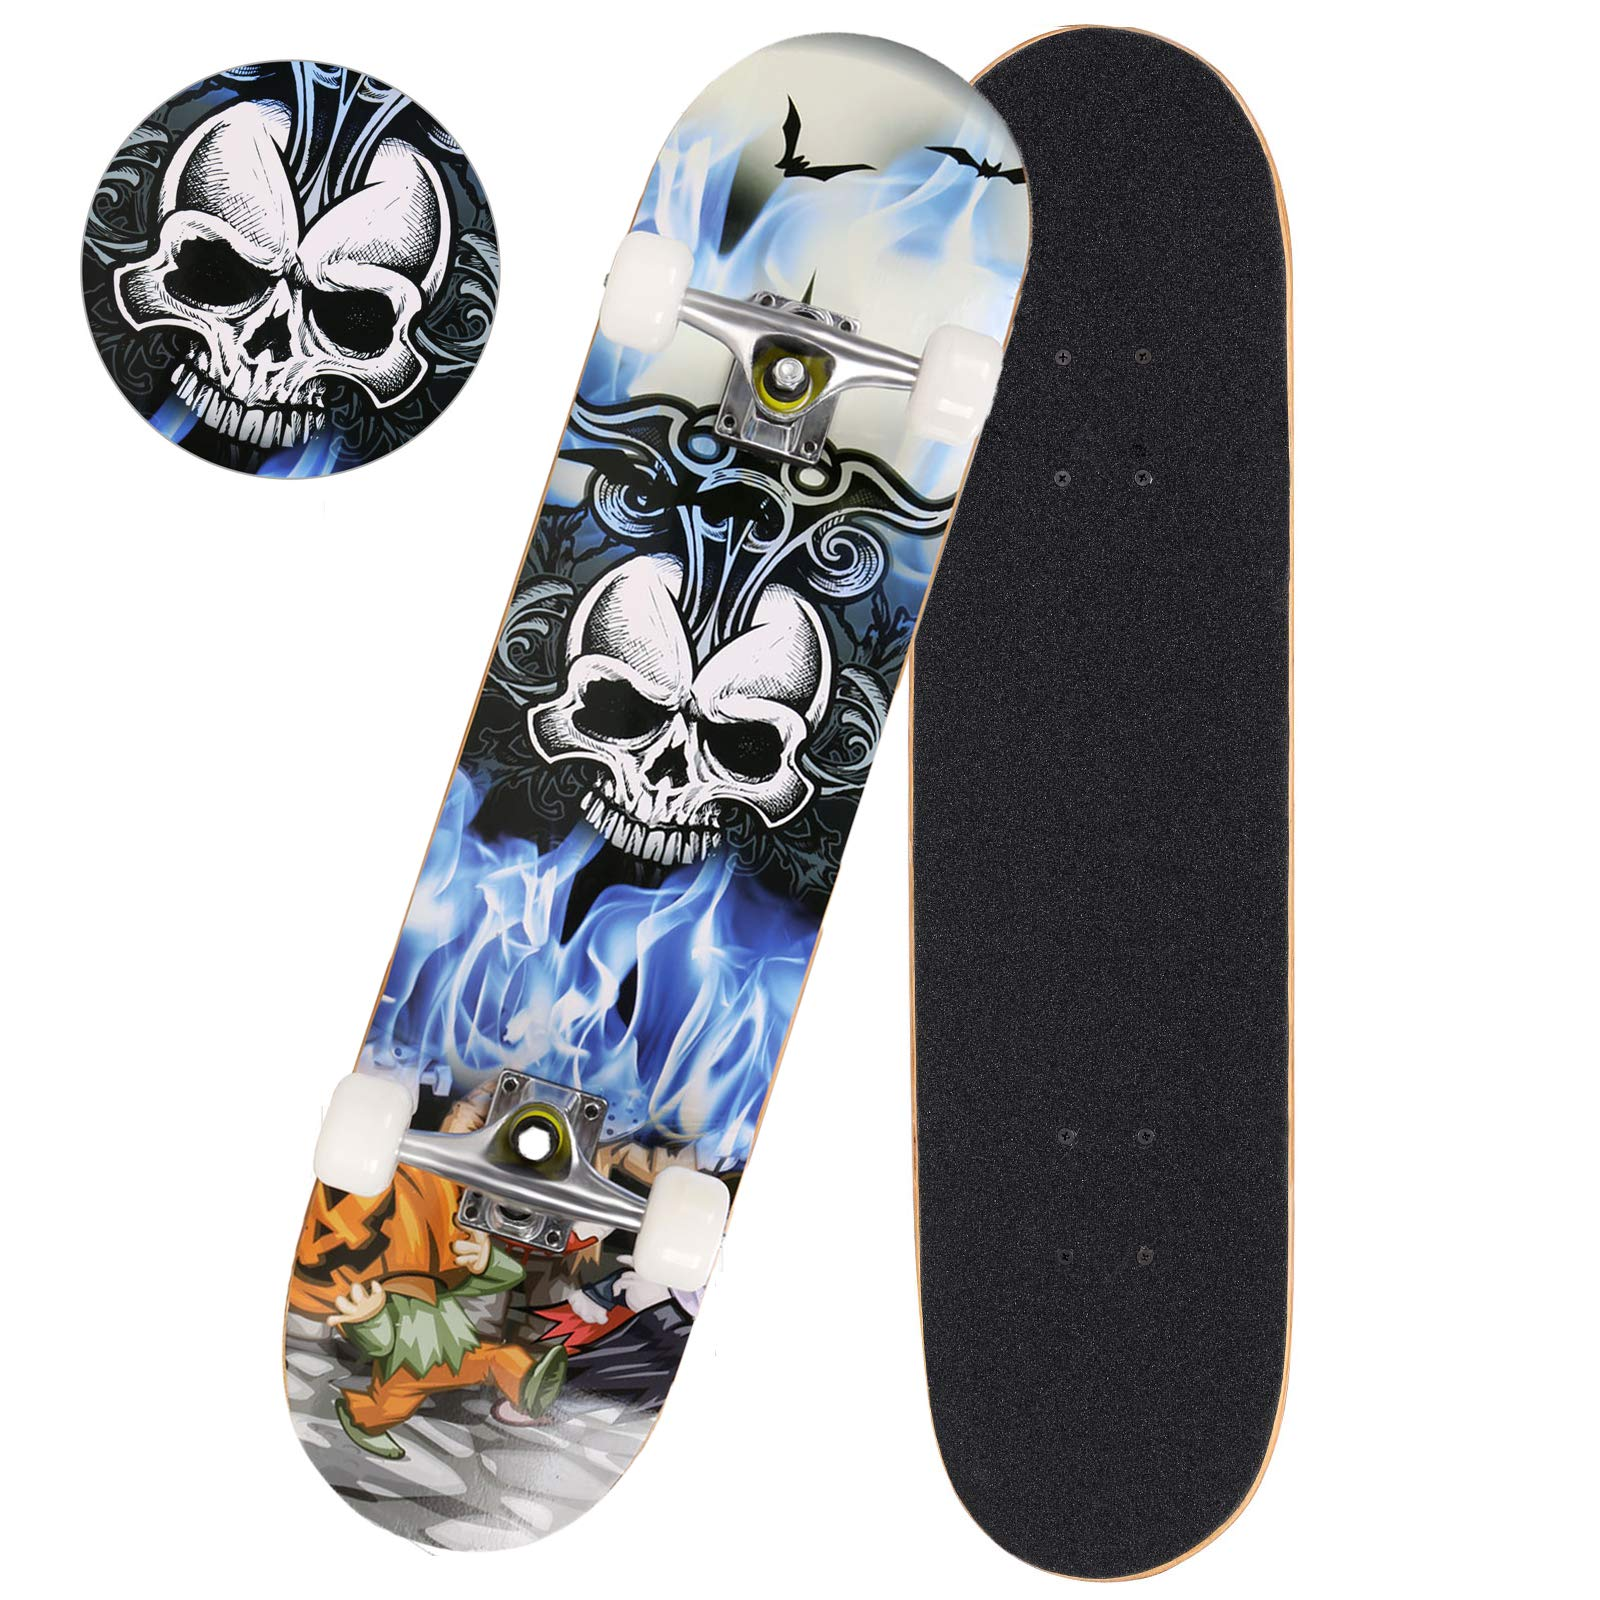 Anfan 31'' Pro Complete Skateboard, Adult Tricks Skate Board with 9 Layer Canadian Maple Wood, Double Kick Tail for Beginner Kids Boys Girls 5 Up Years Old (US Stock) (Skull)